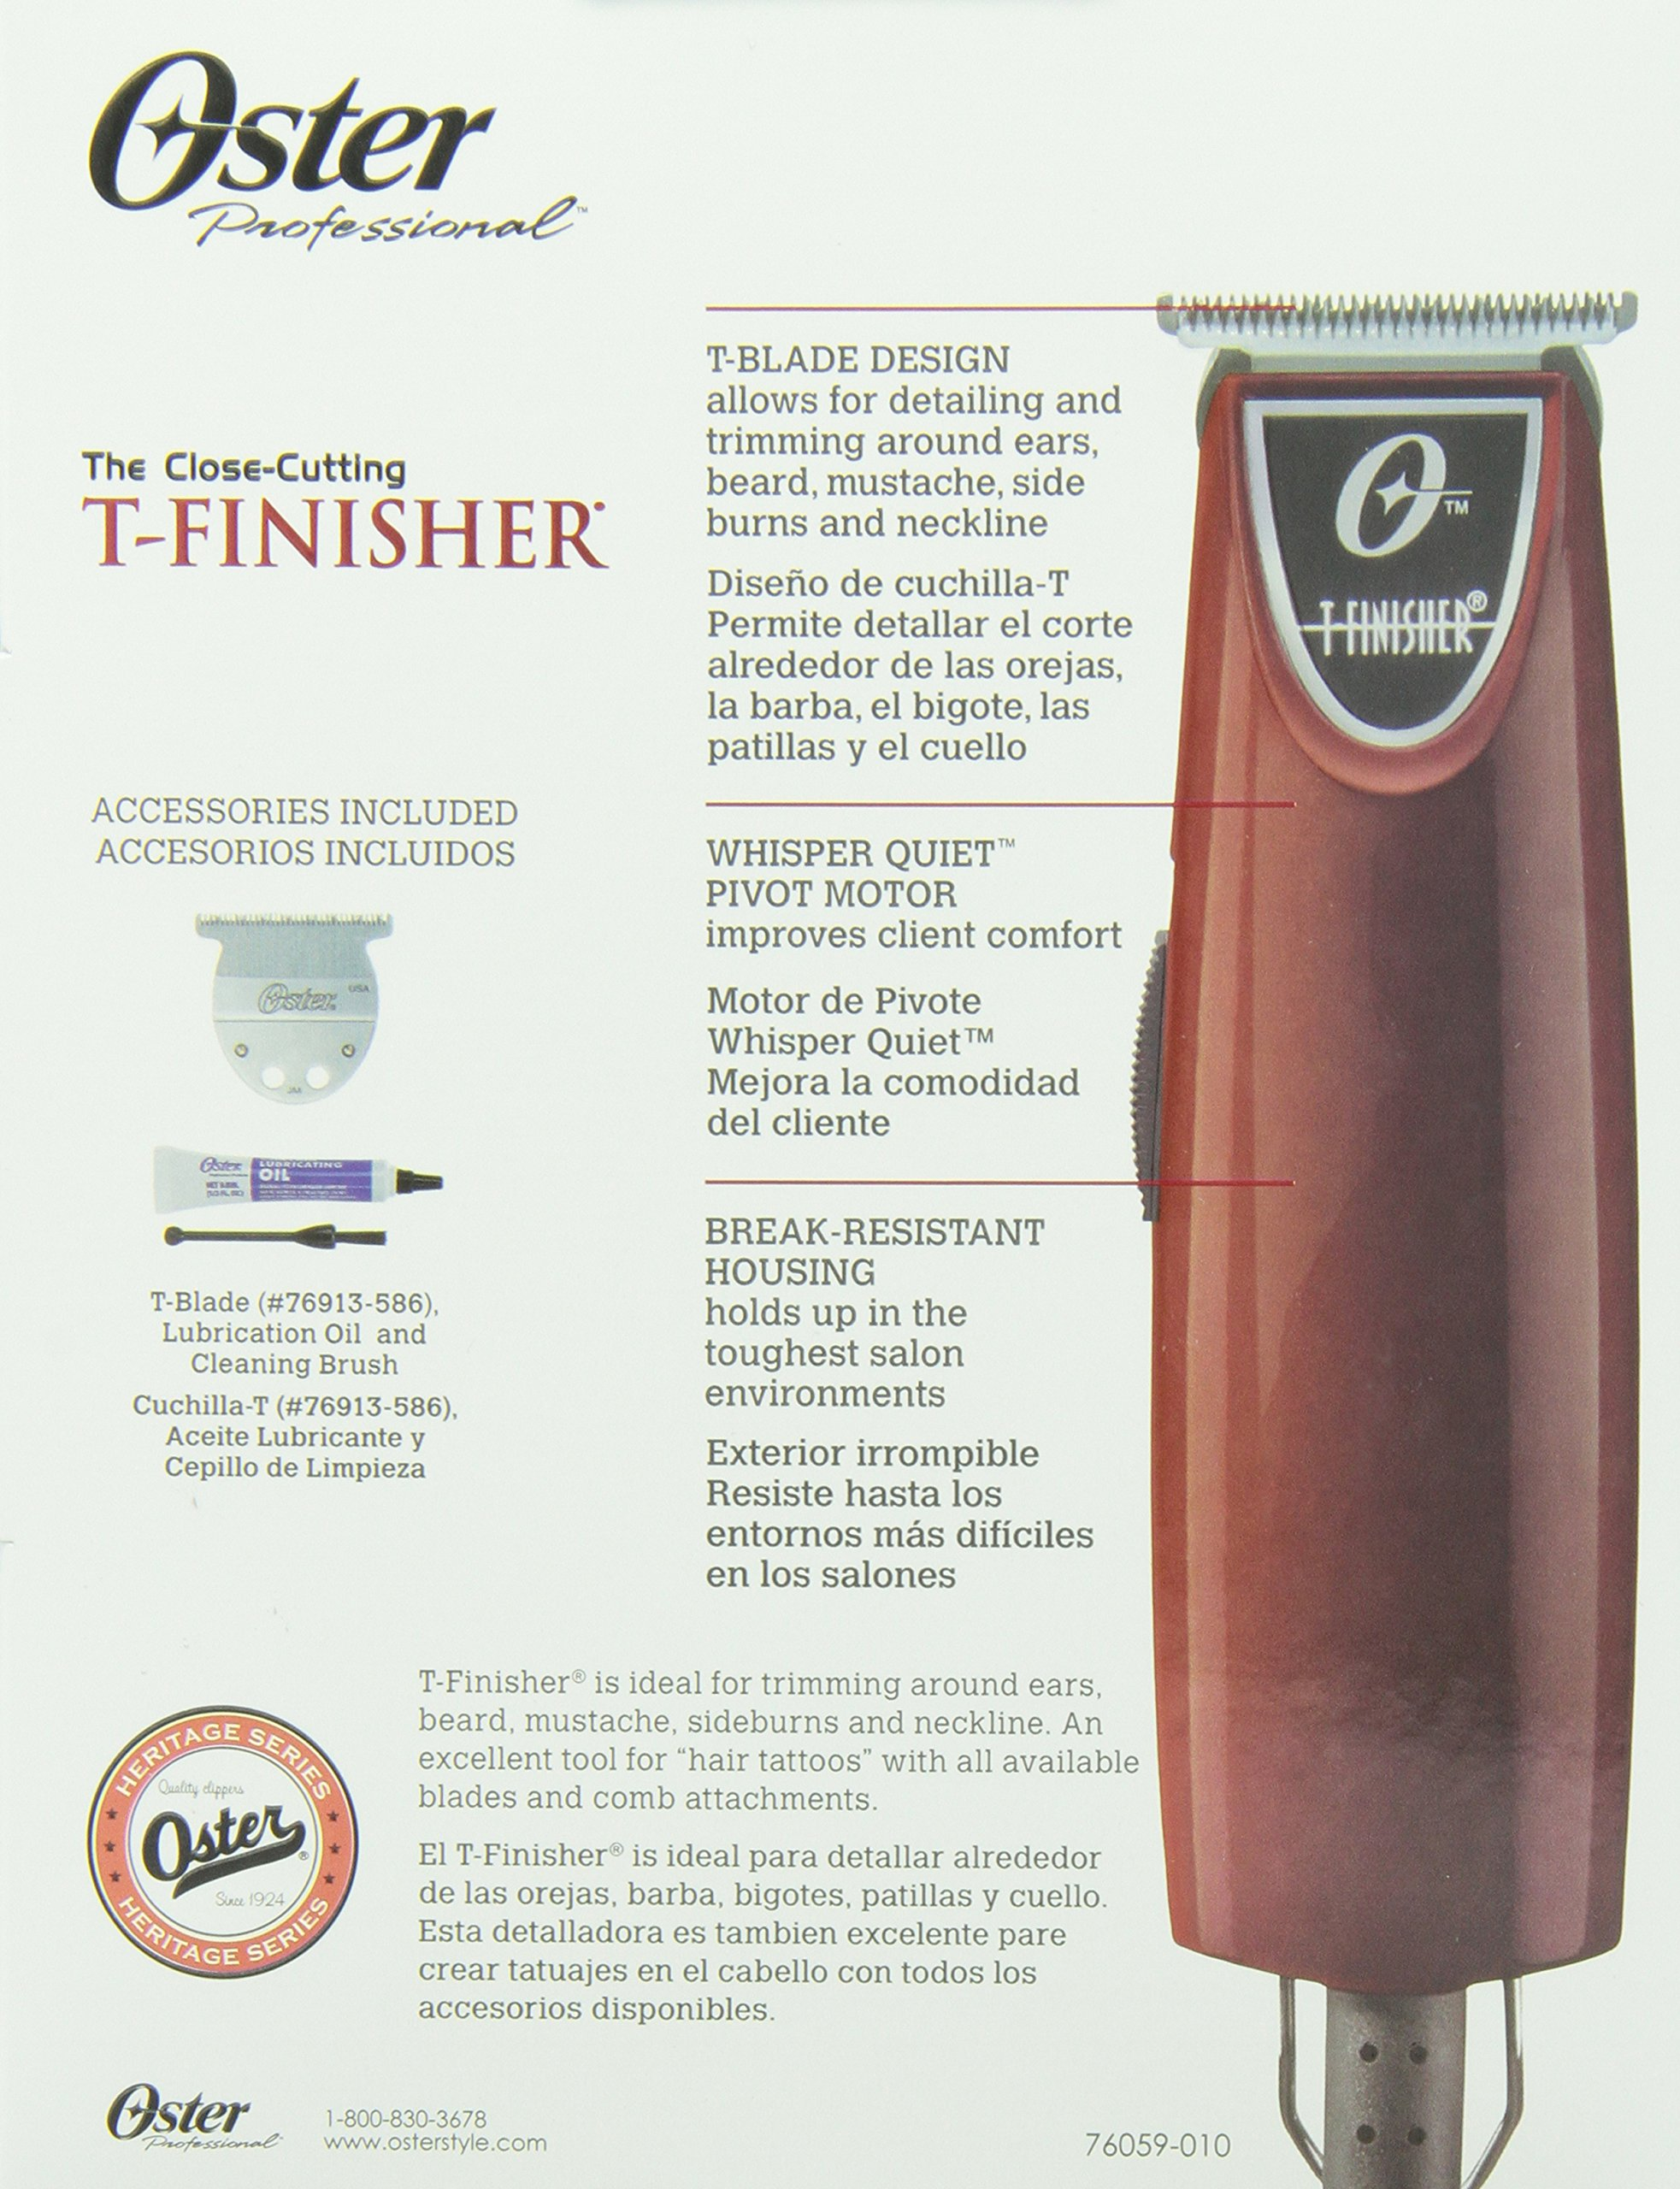 Oster Ac T-finisher Trimmer # 76059-010 by Oster (Image #4)